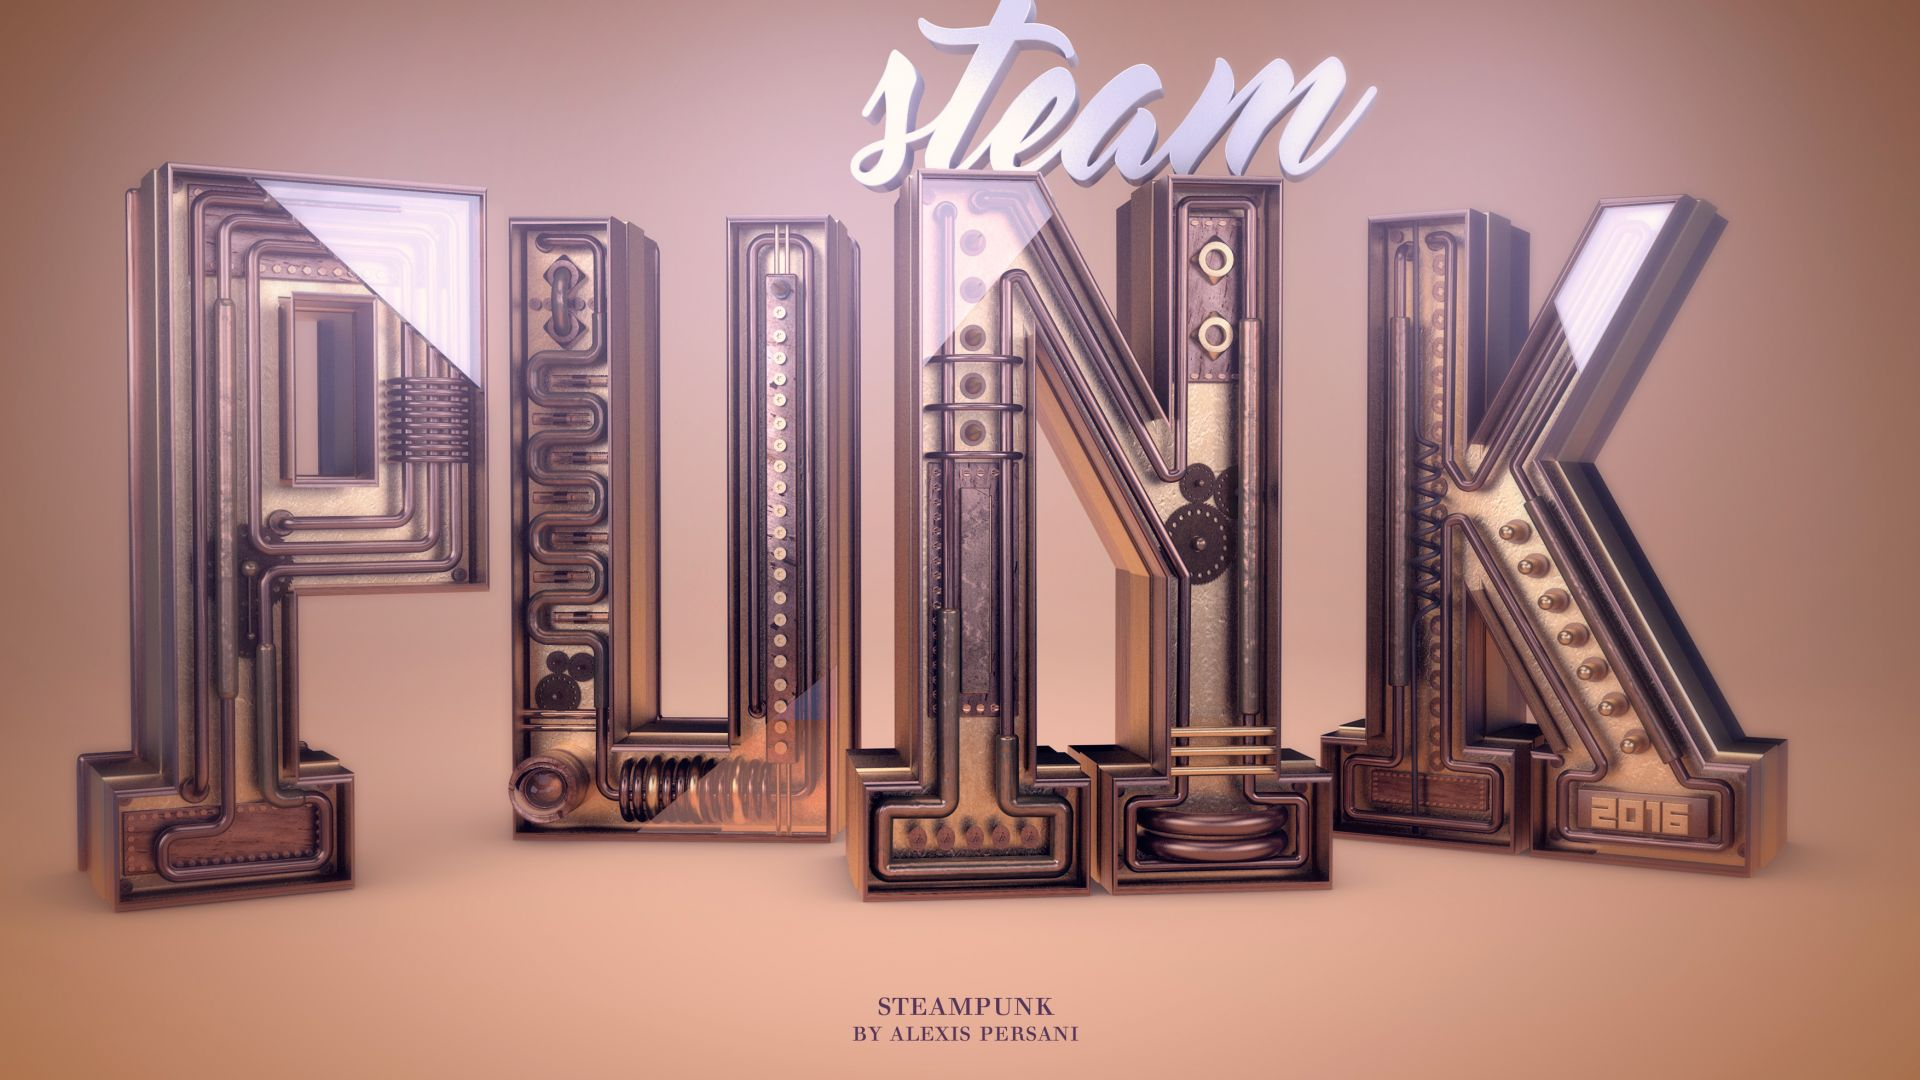 abstract, font, typography, steam punk, shape, 3D, 4k wallpaper